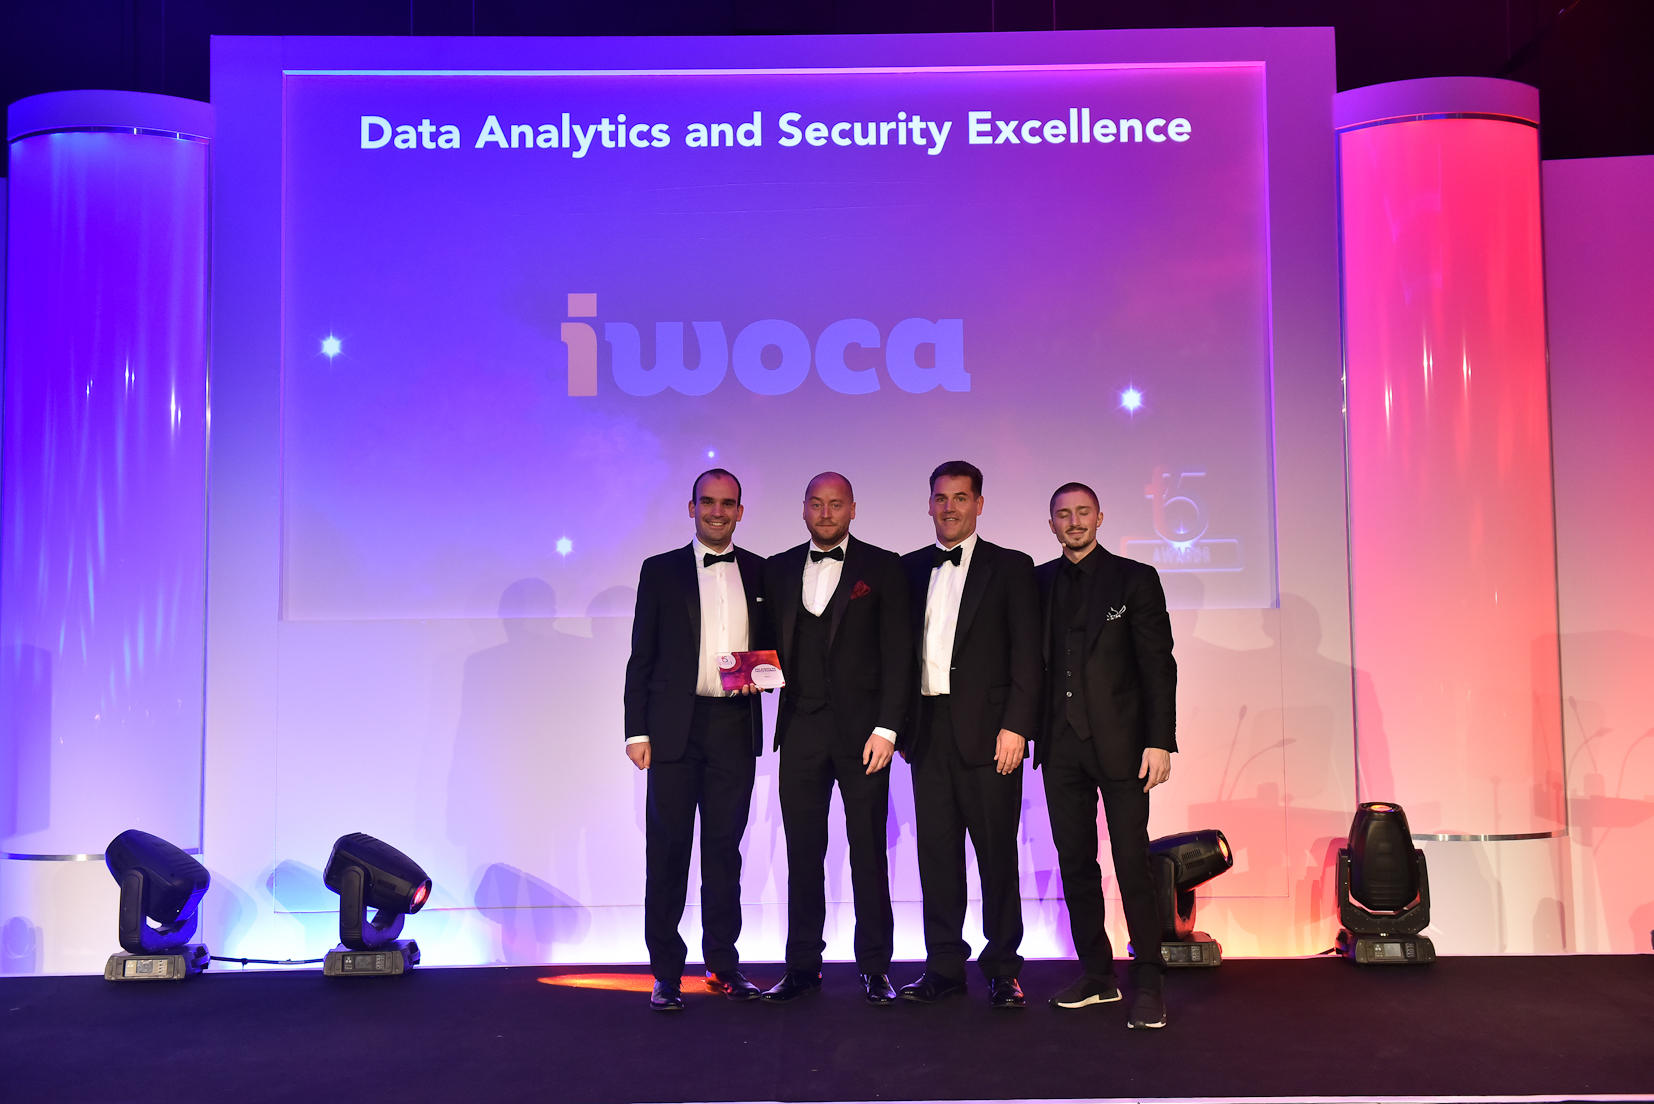 Winners F5 2017 - 8 Data Analytics and Security Excellence